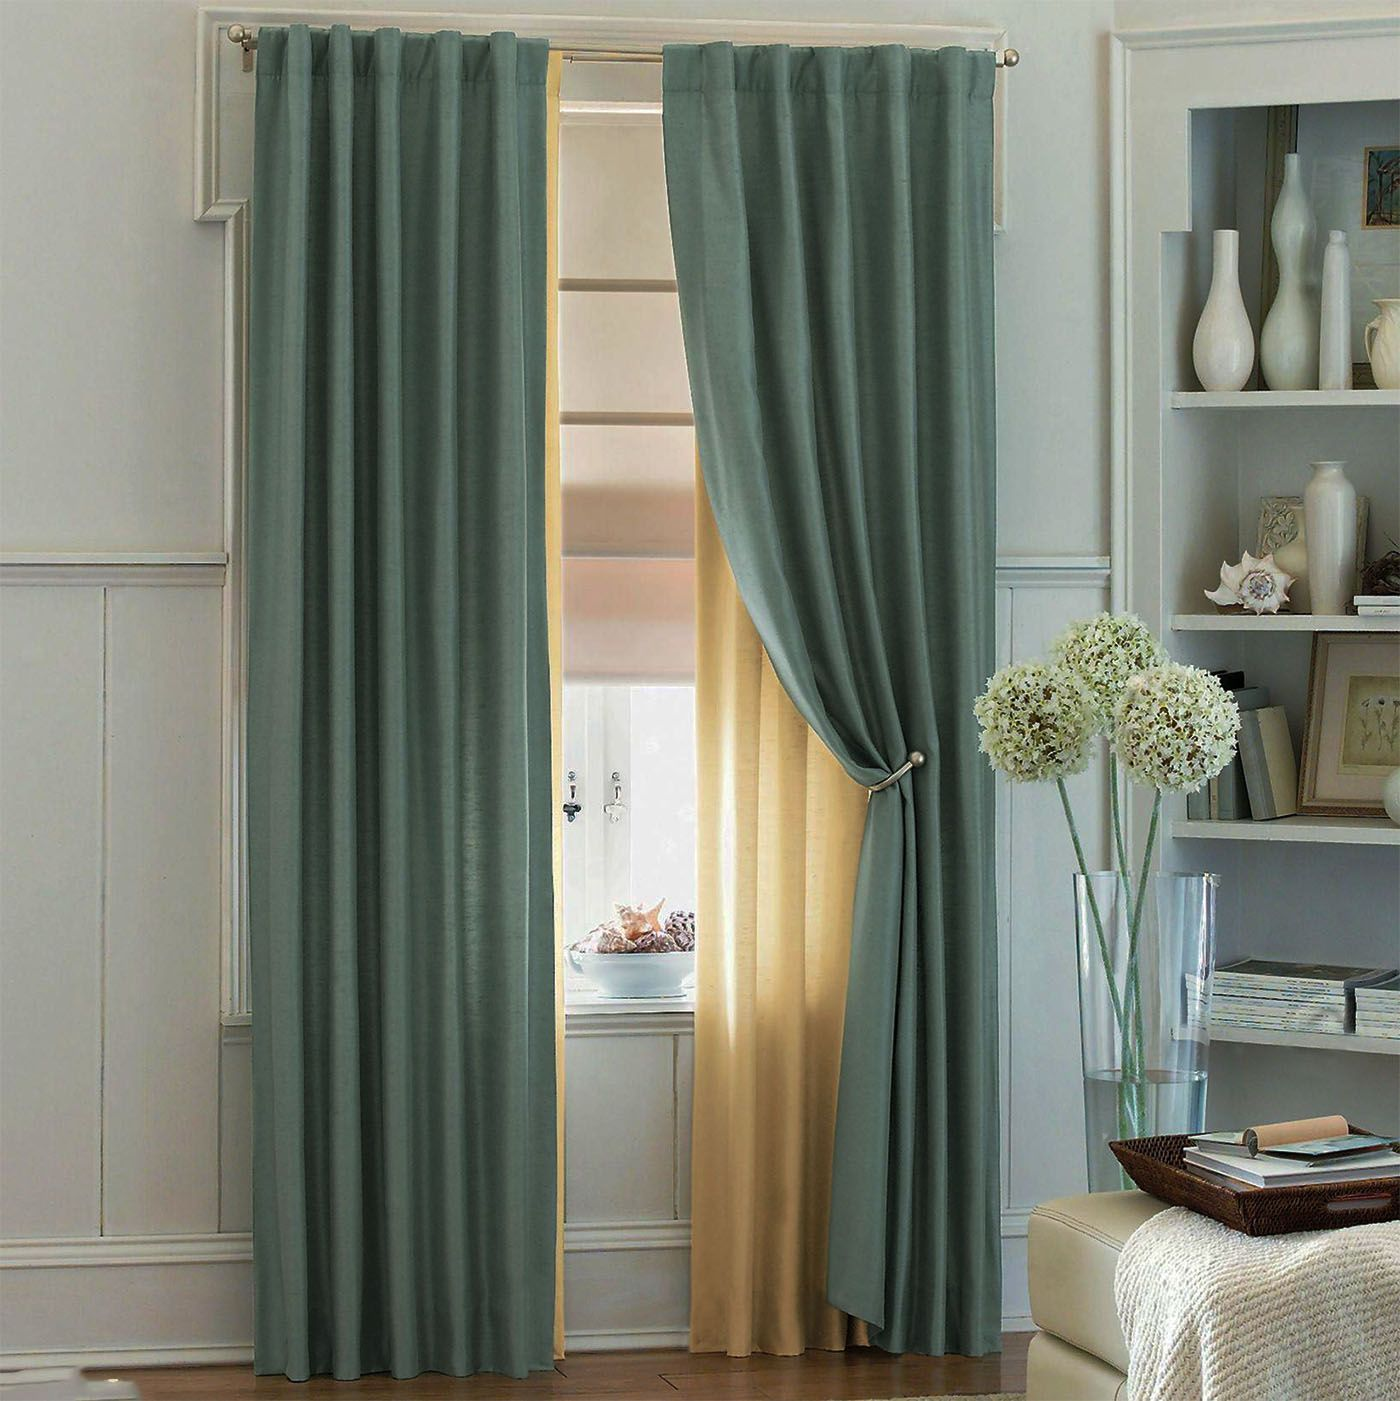 Curtain Models Blinds Latest Fashion Trends In 2018 Home